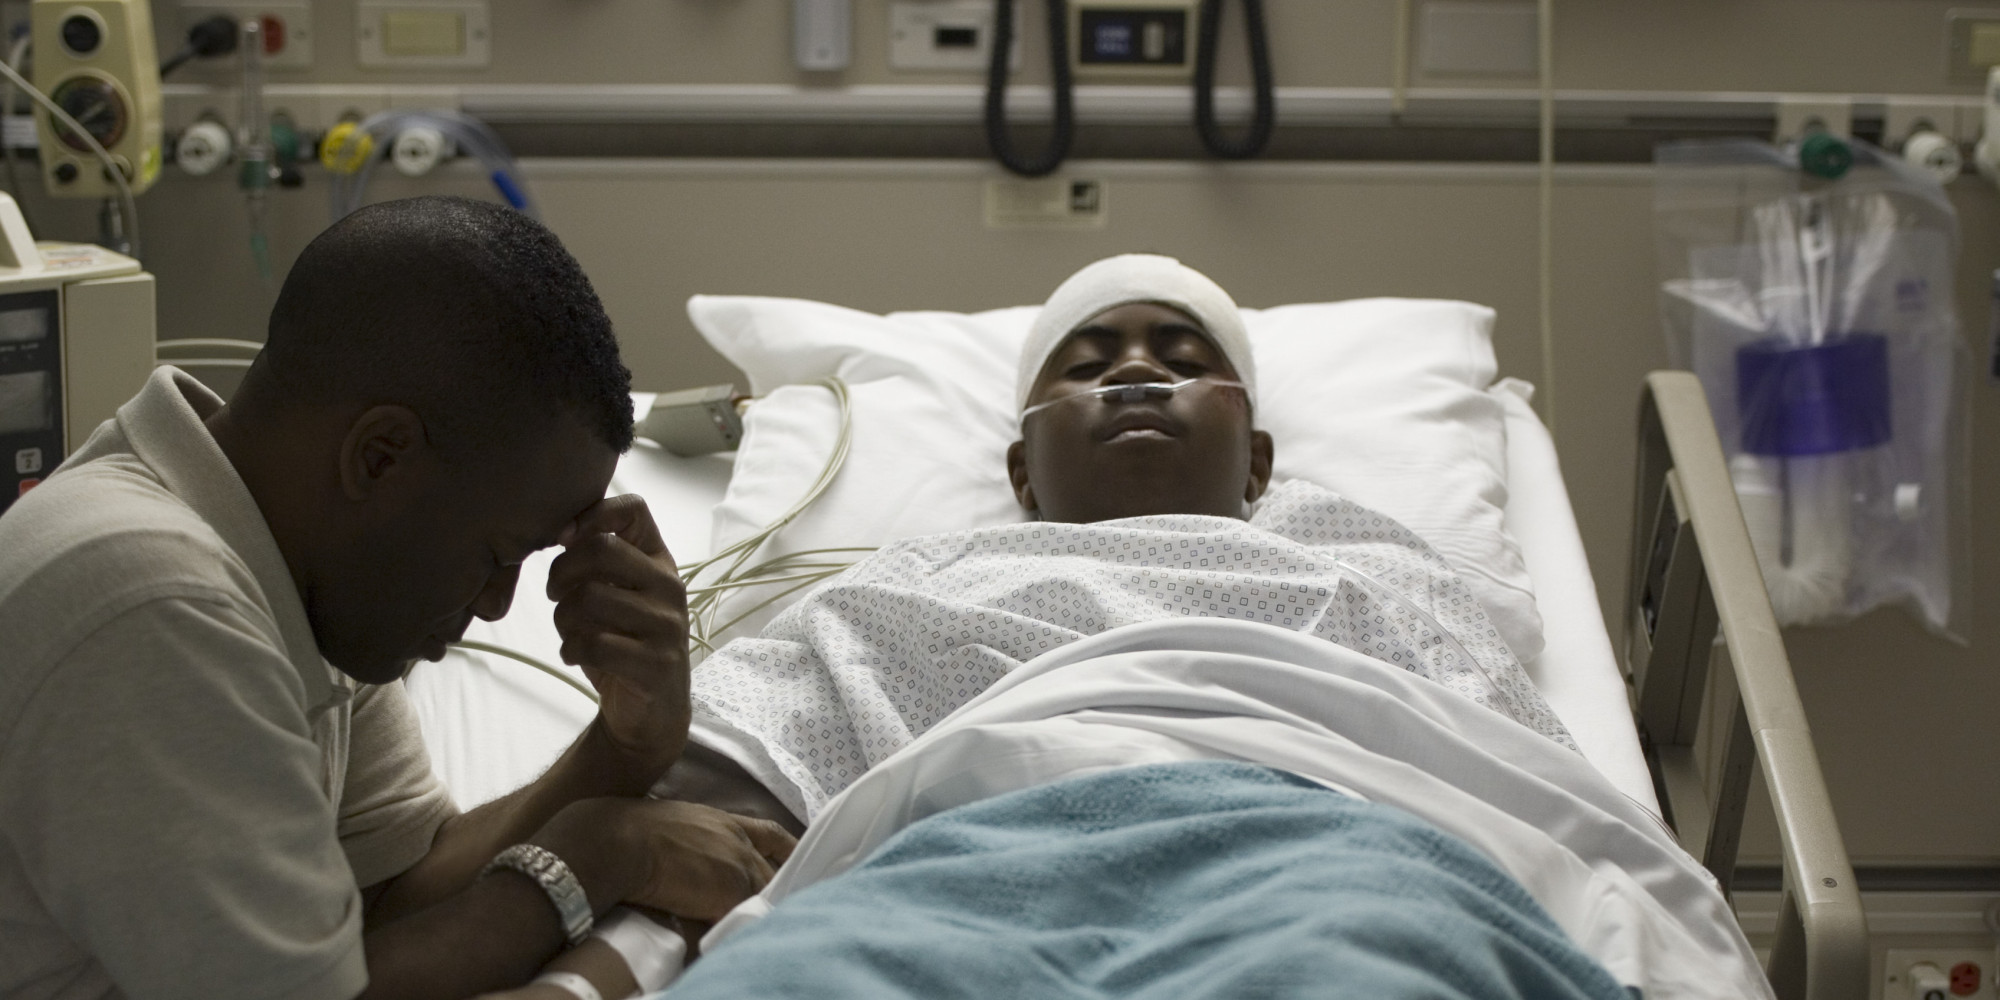 Man Sick And Dying Hospital Bed